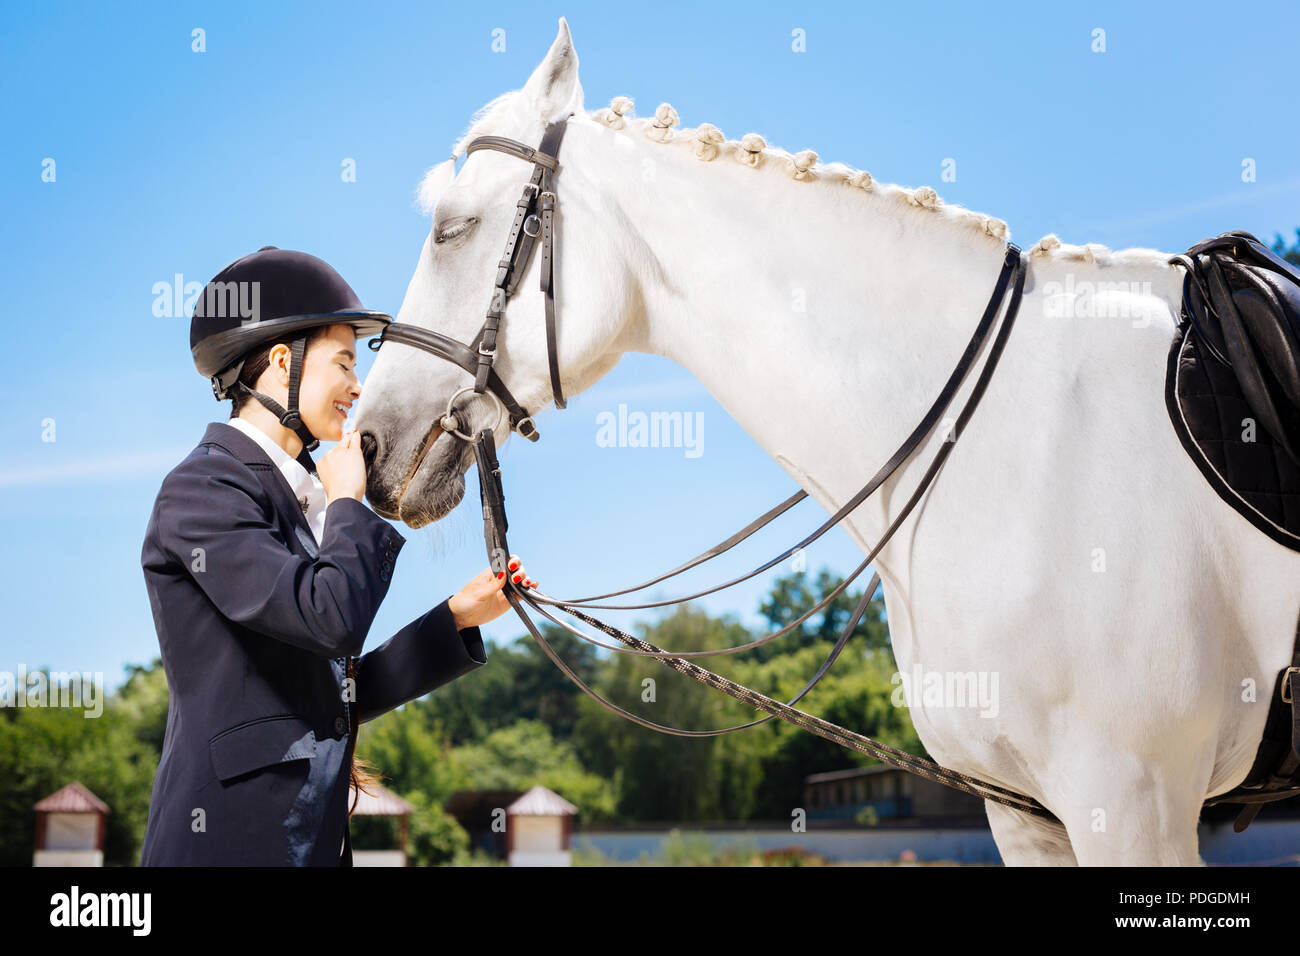 Caring female rider loving her white horse greatly - Stock Image